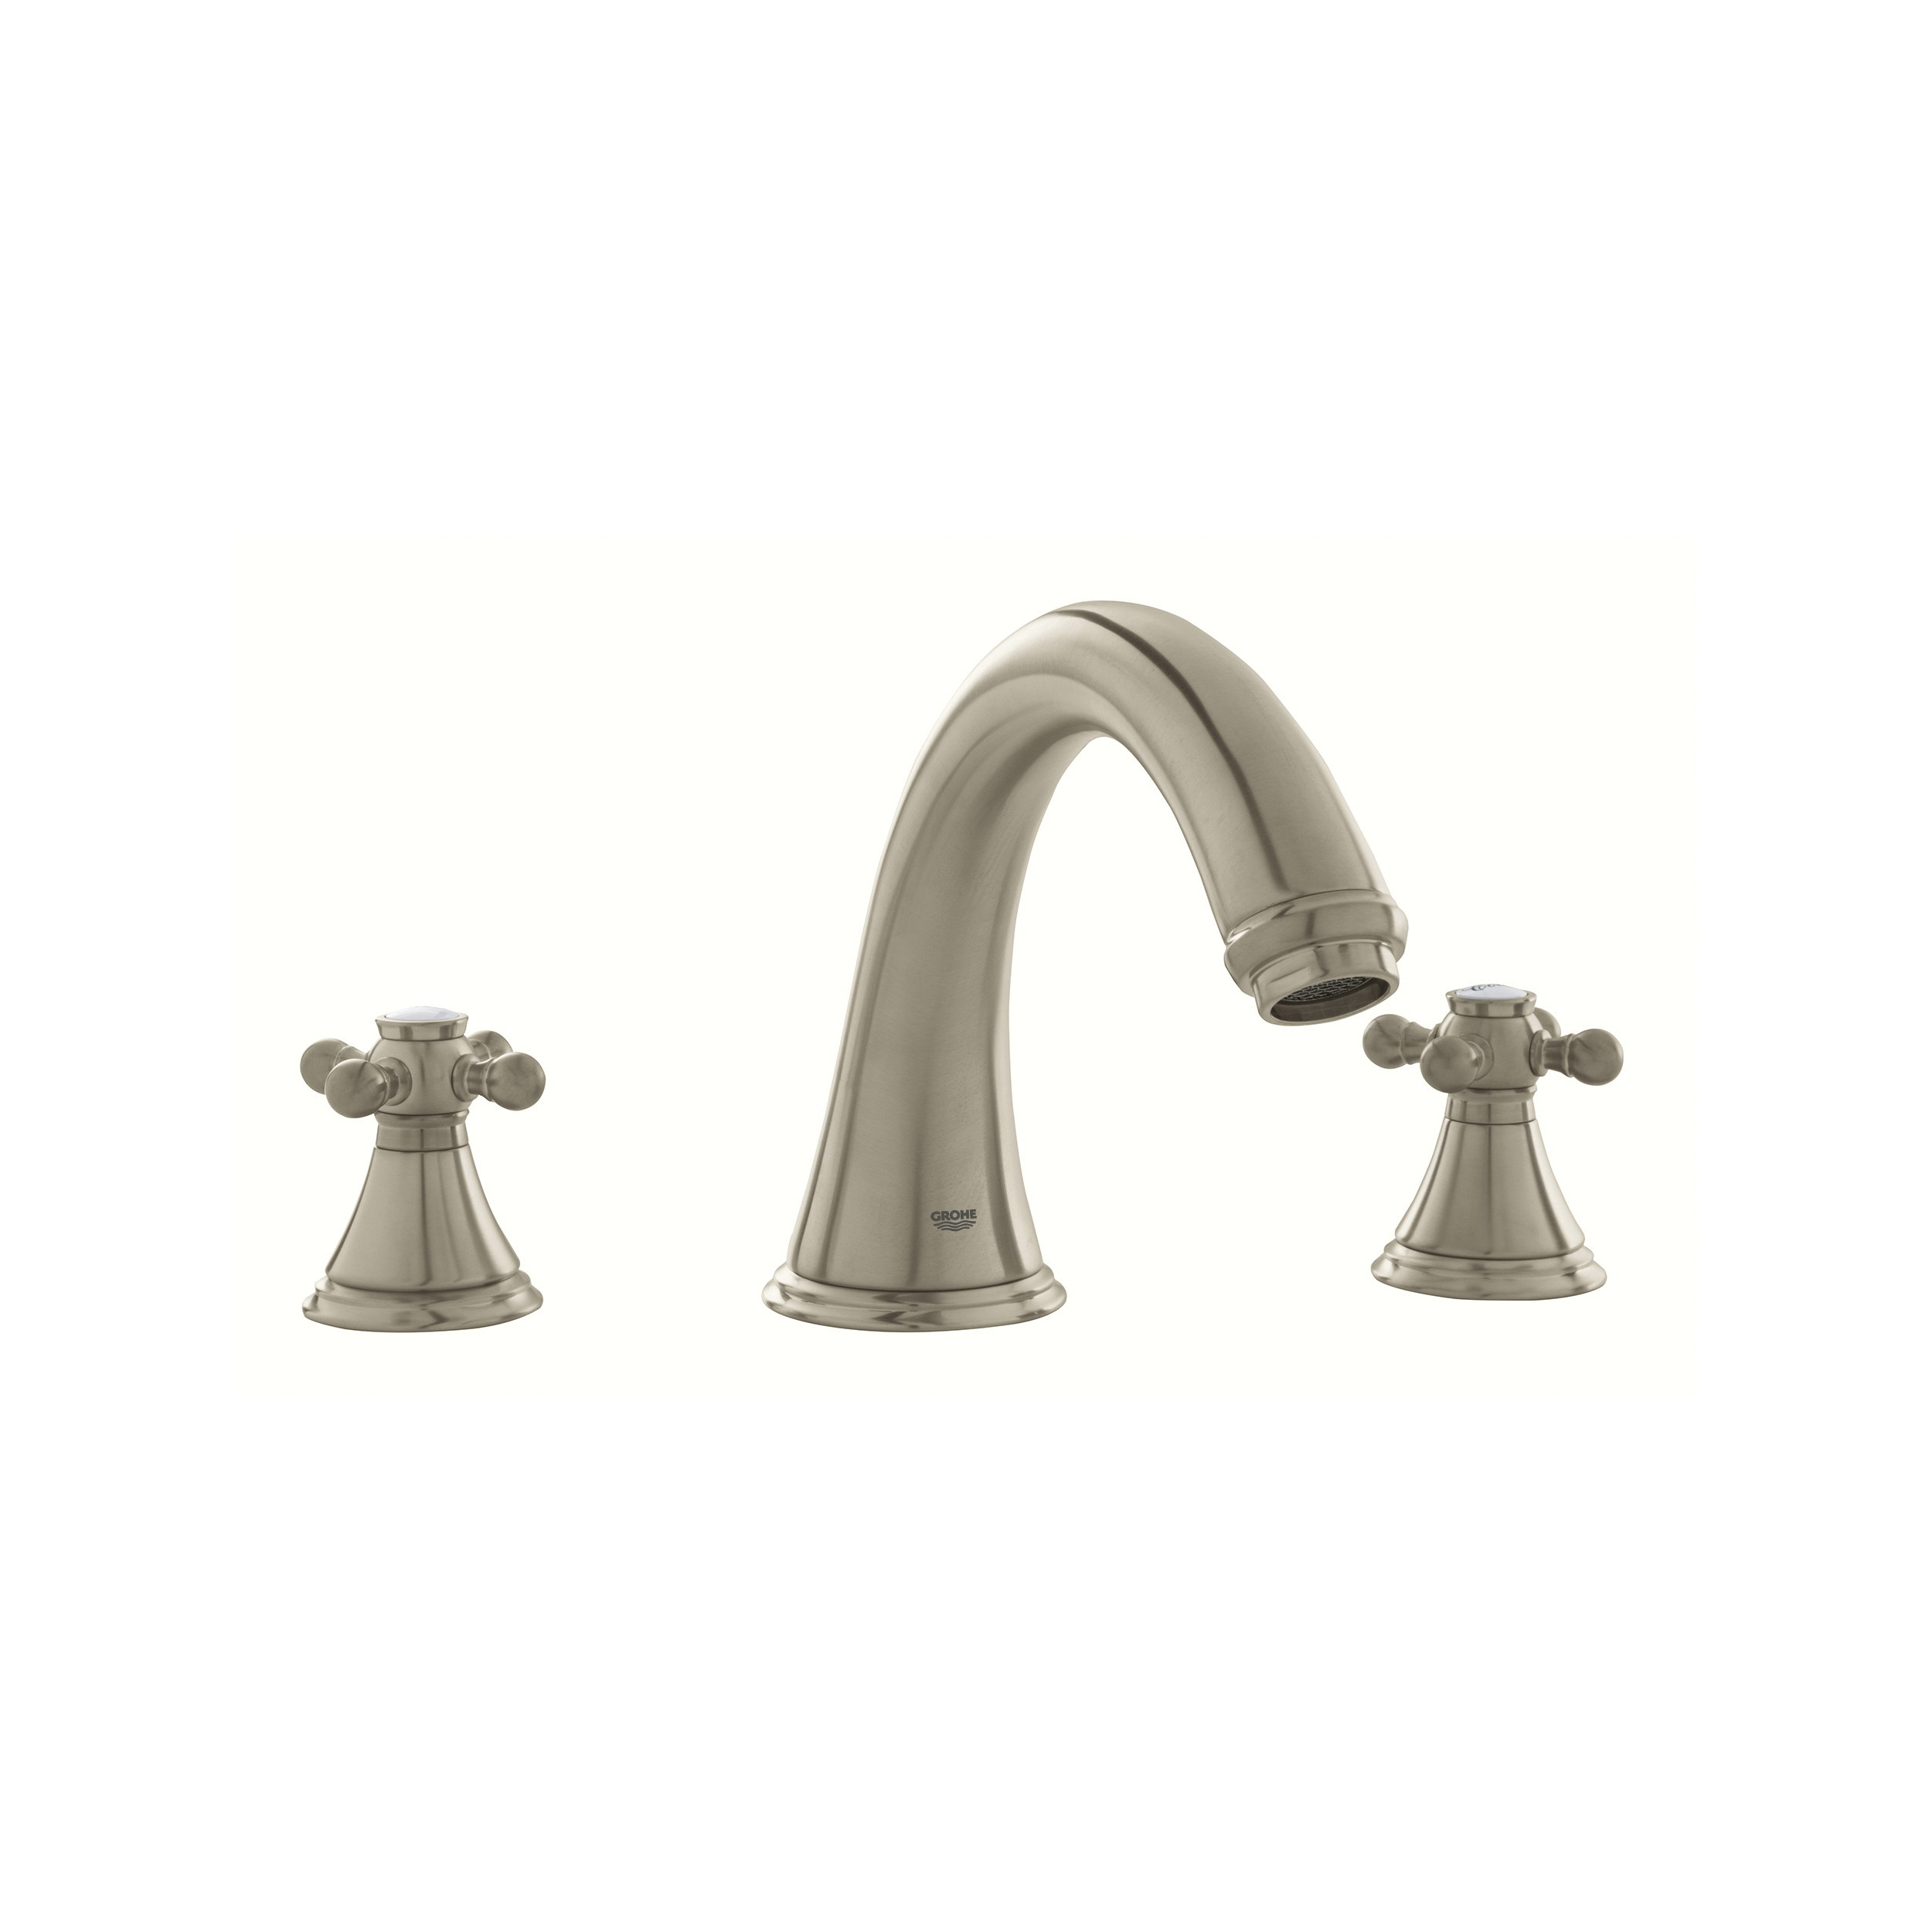 Consolidated Supply Co Grohe 25054en0 Geneva Roman